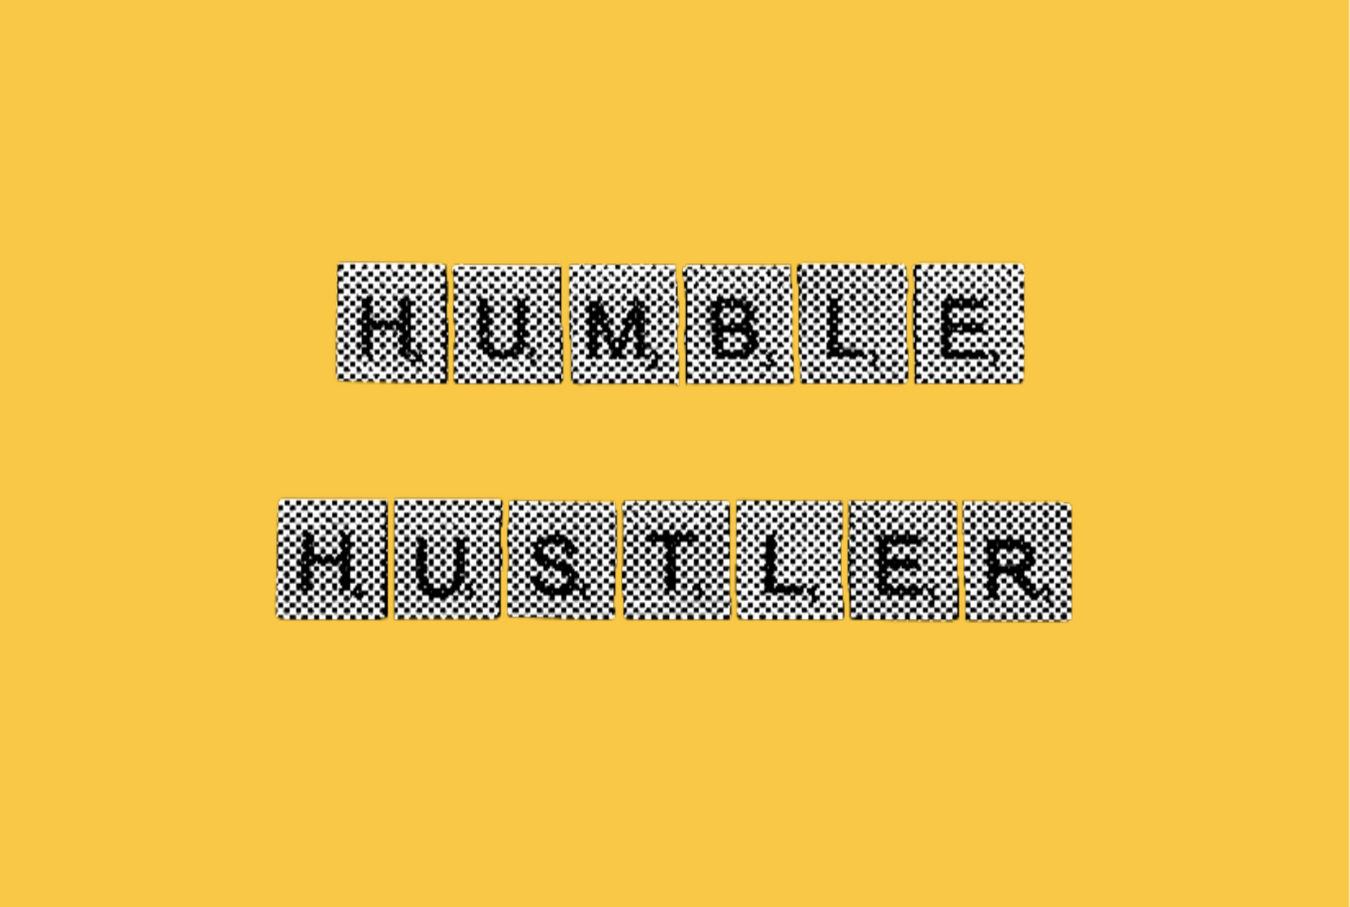 Showing humility as a gig worker